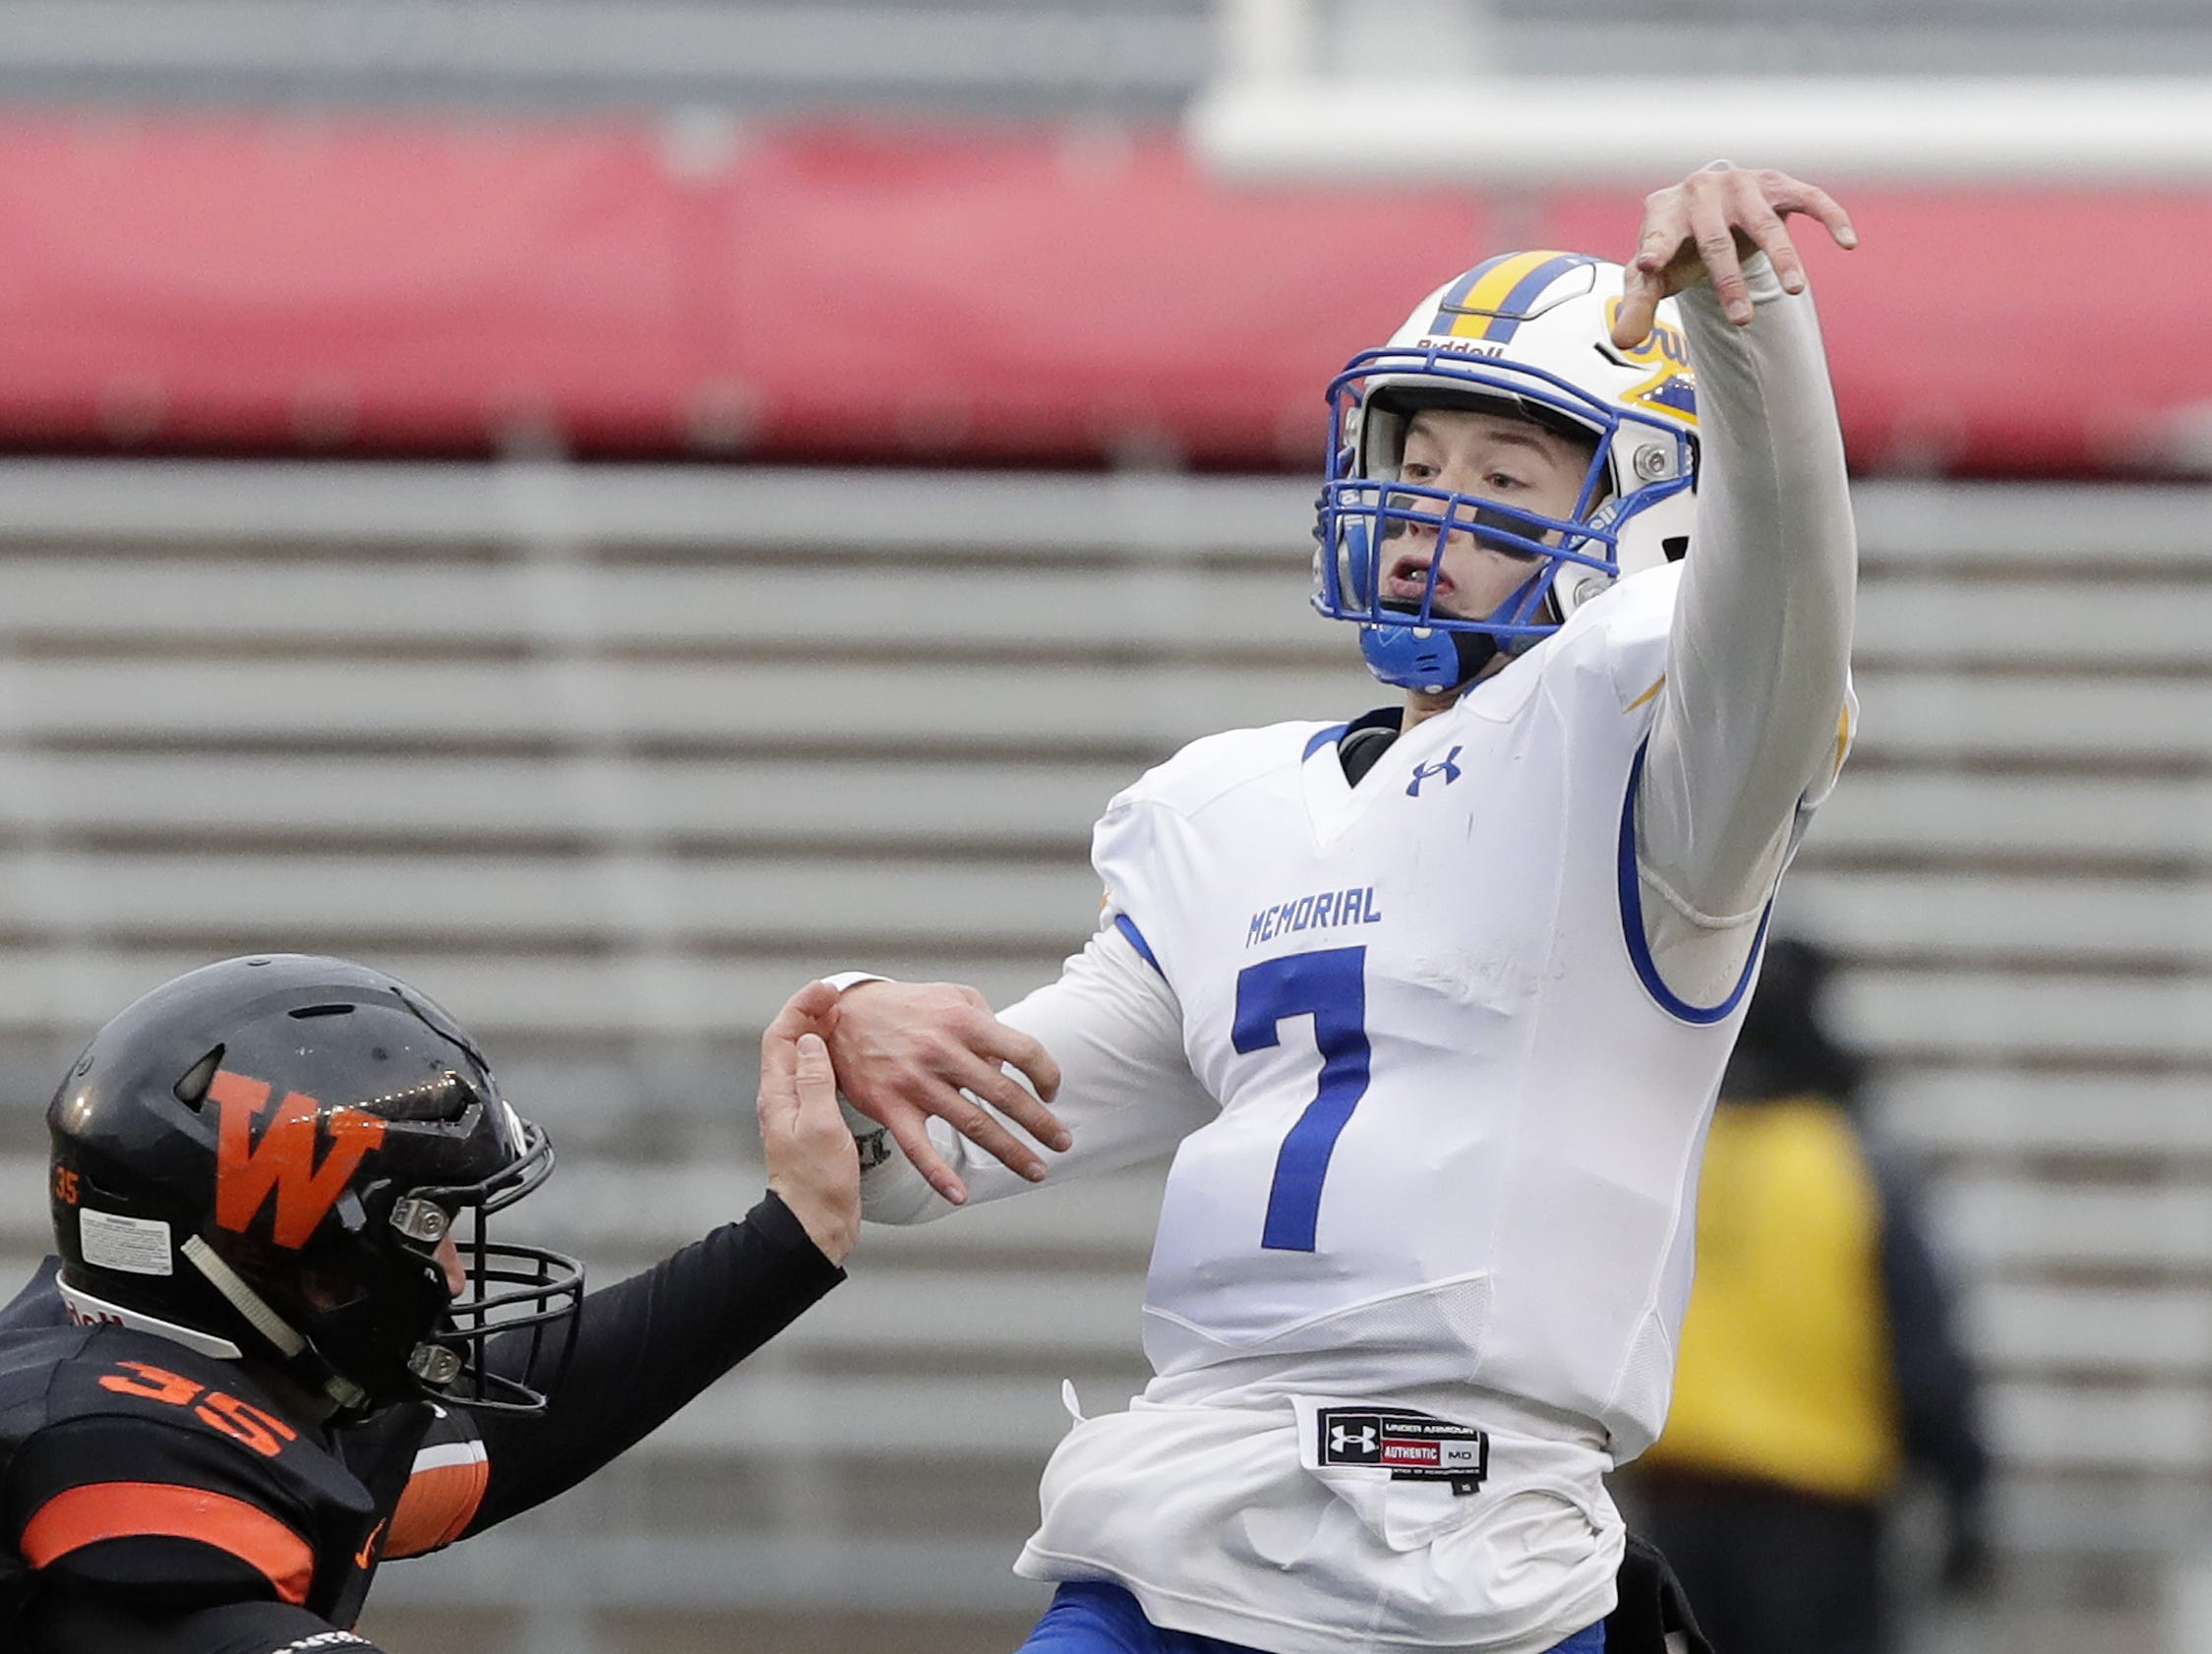 West De Pere's Alex Spitzer (35) pressures Catholic Memorial quarterback Luke Fox (7) in the WIAA Division 3 championship game at Camp Randall Stadium on Friday, November 16, 2018 in Madison, Wis.